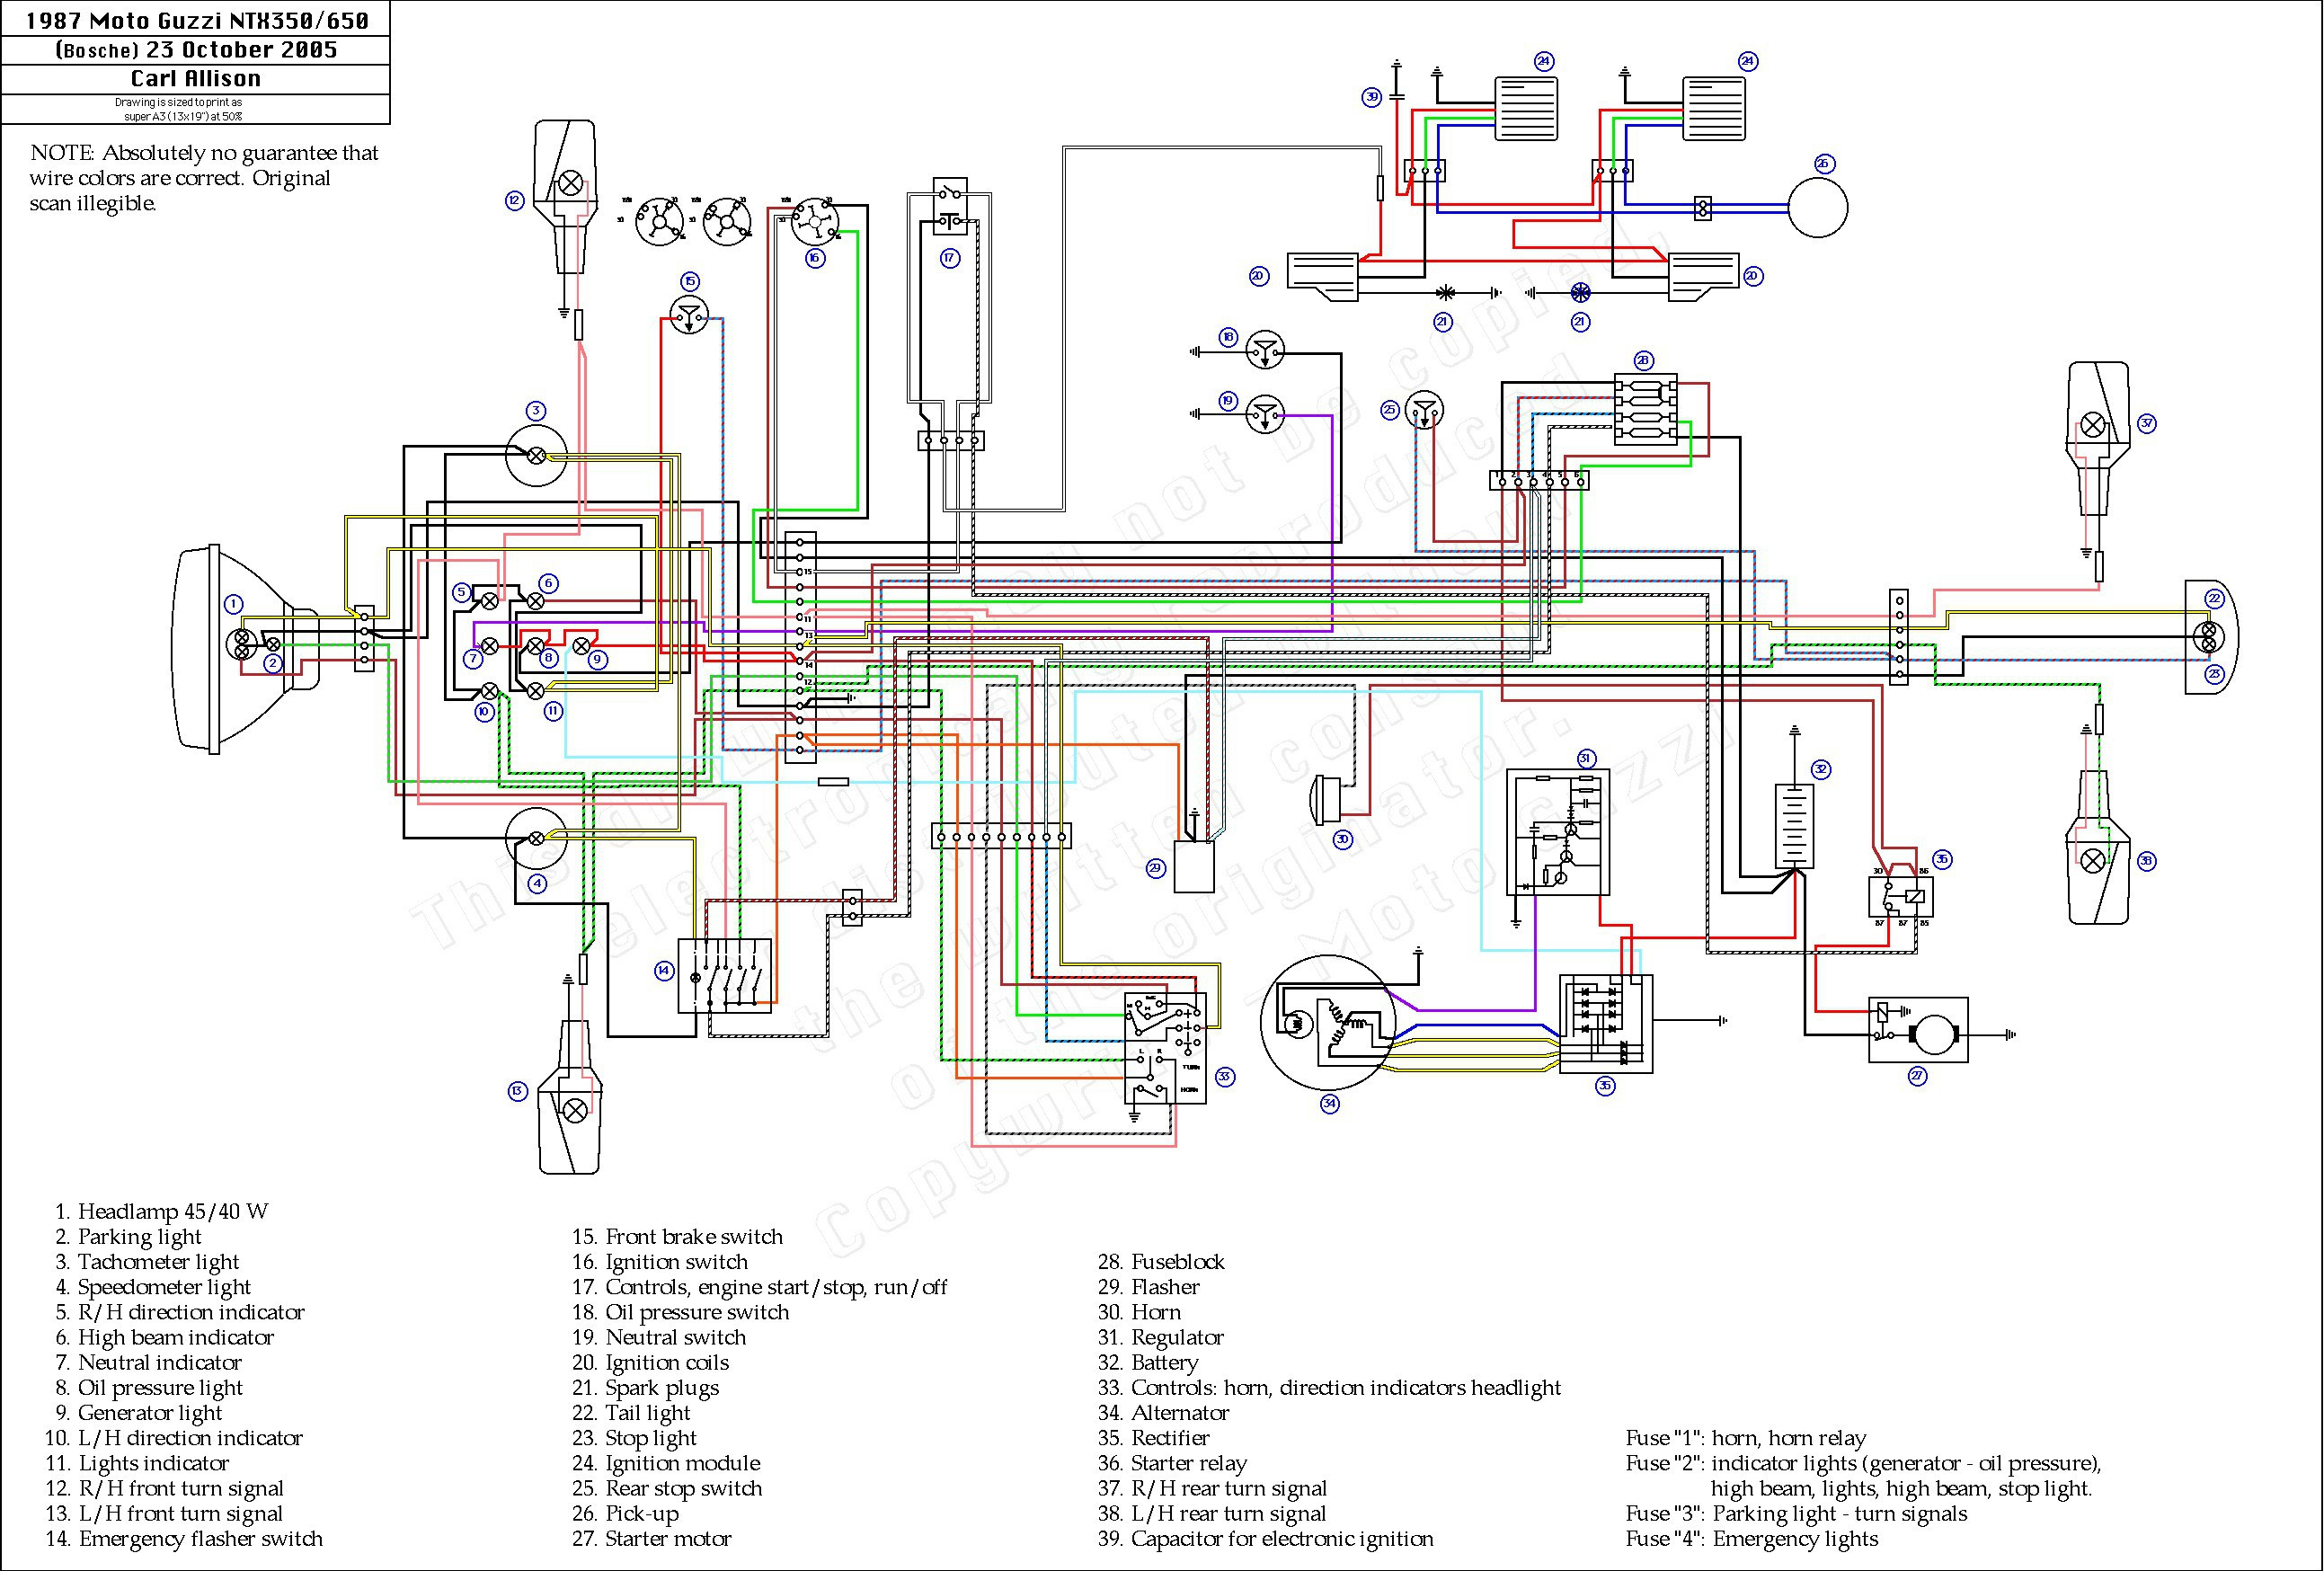 Lifan 200Cc Wiring Diagram | Wiring Diagram - Chinese Atv Wiring Diagram